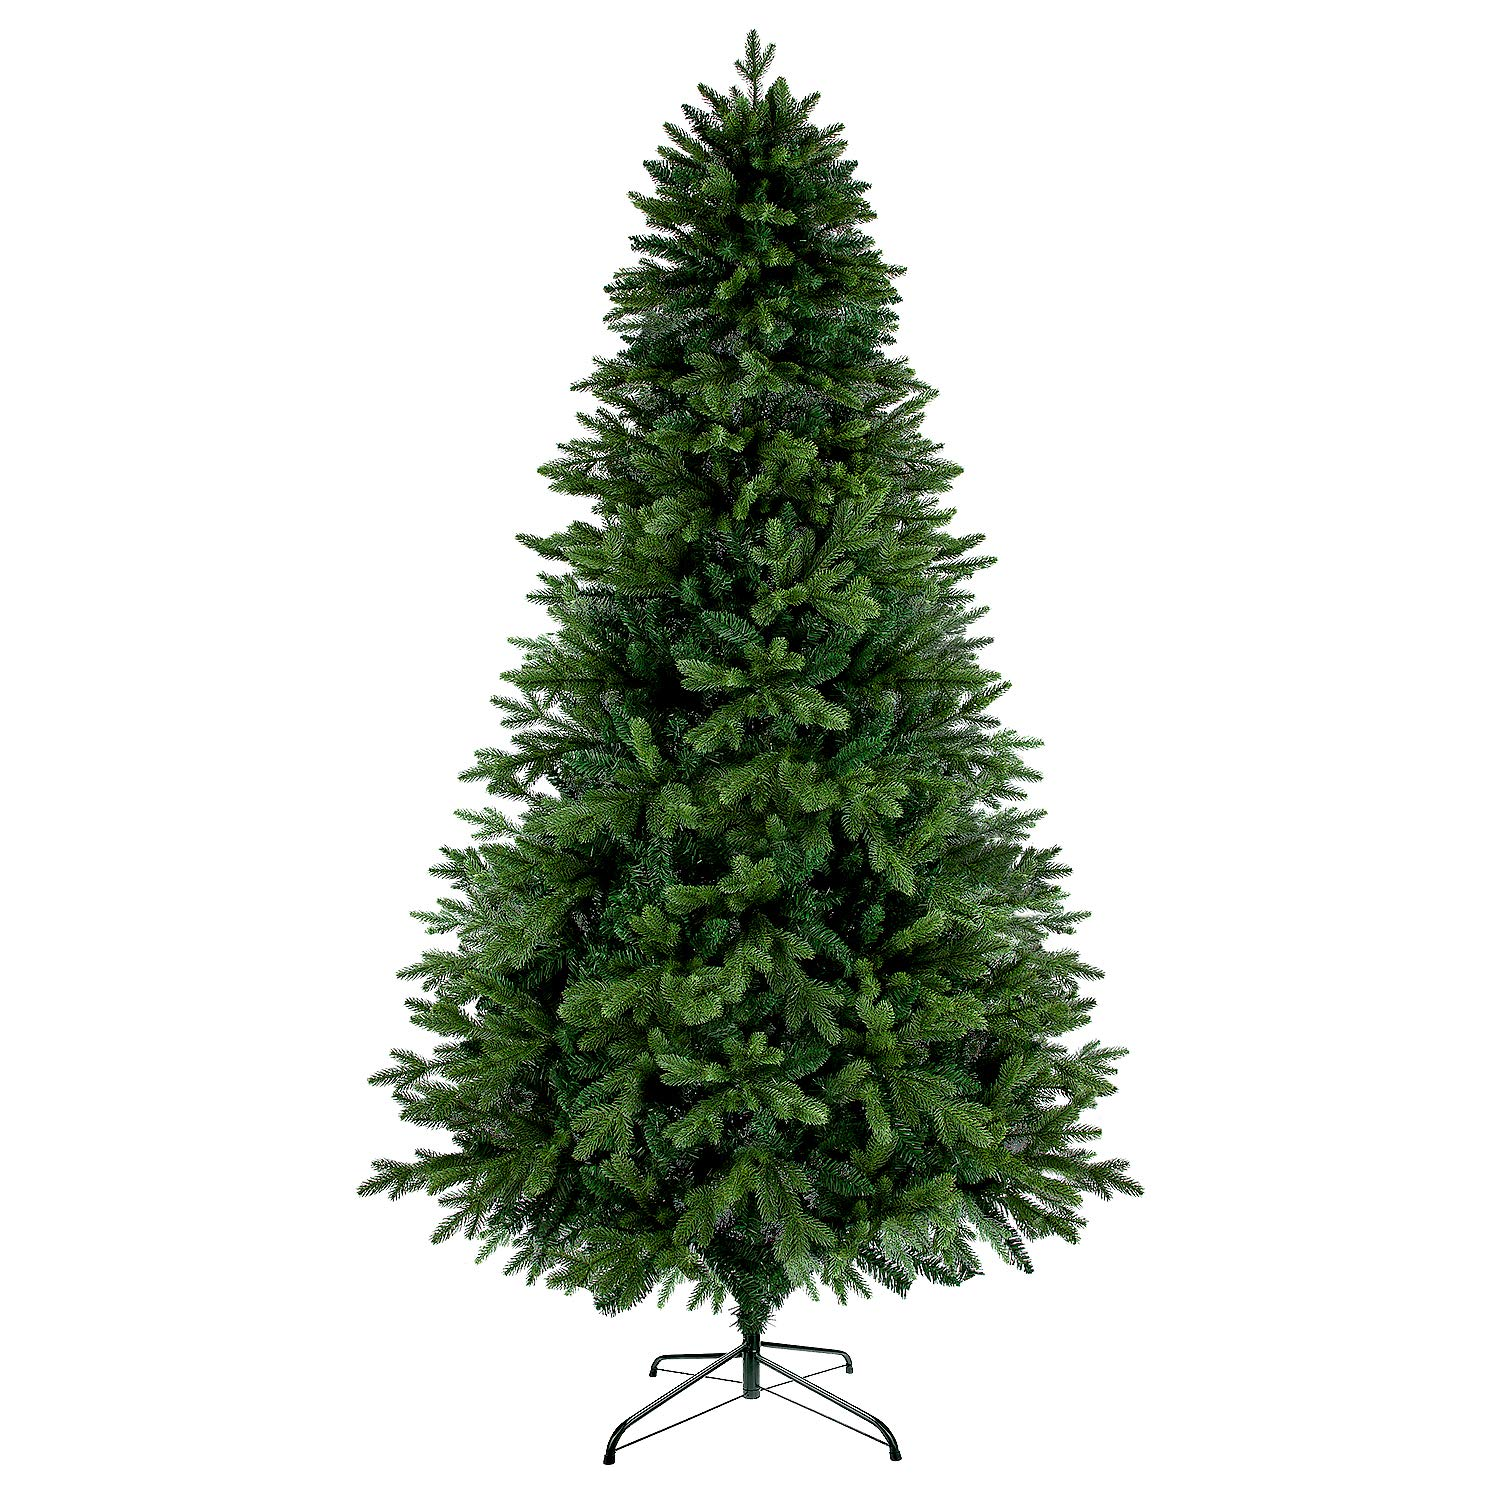 LUTER 7.5 Ft Artificial Christmas Tree Spruce Hinged Xmas Tree 1250 Branches for Indoor Outdoor Holiday Decoration Easy Assembling with Solid Christmas Tree Metal Stand (Green) by LUTER